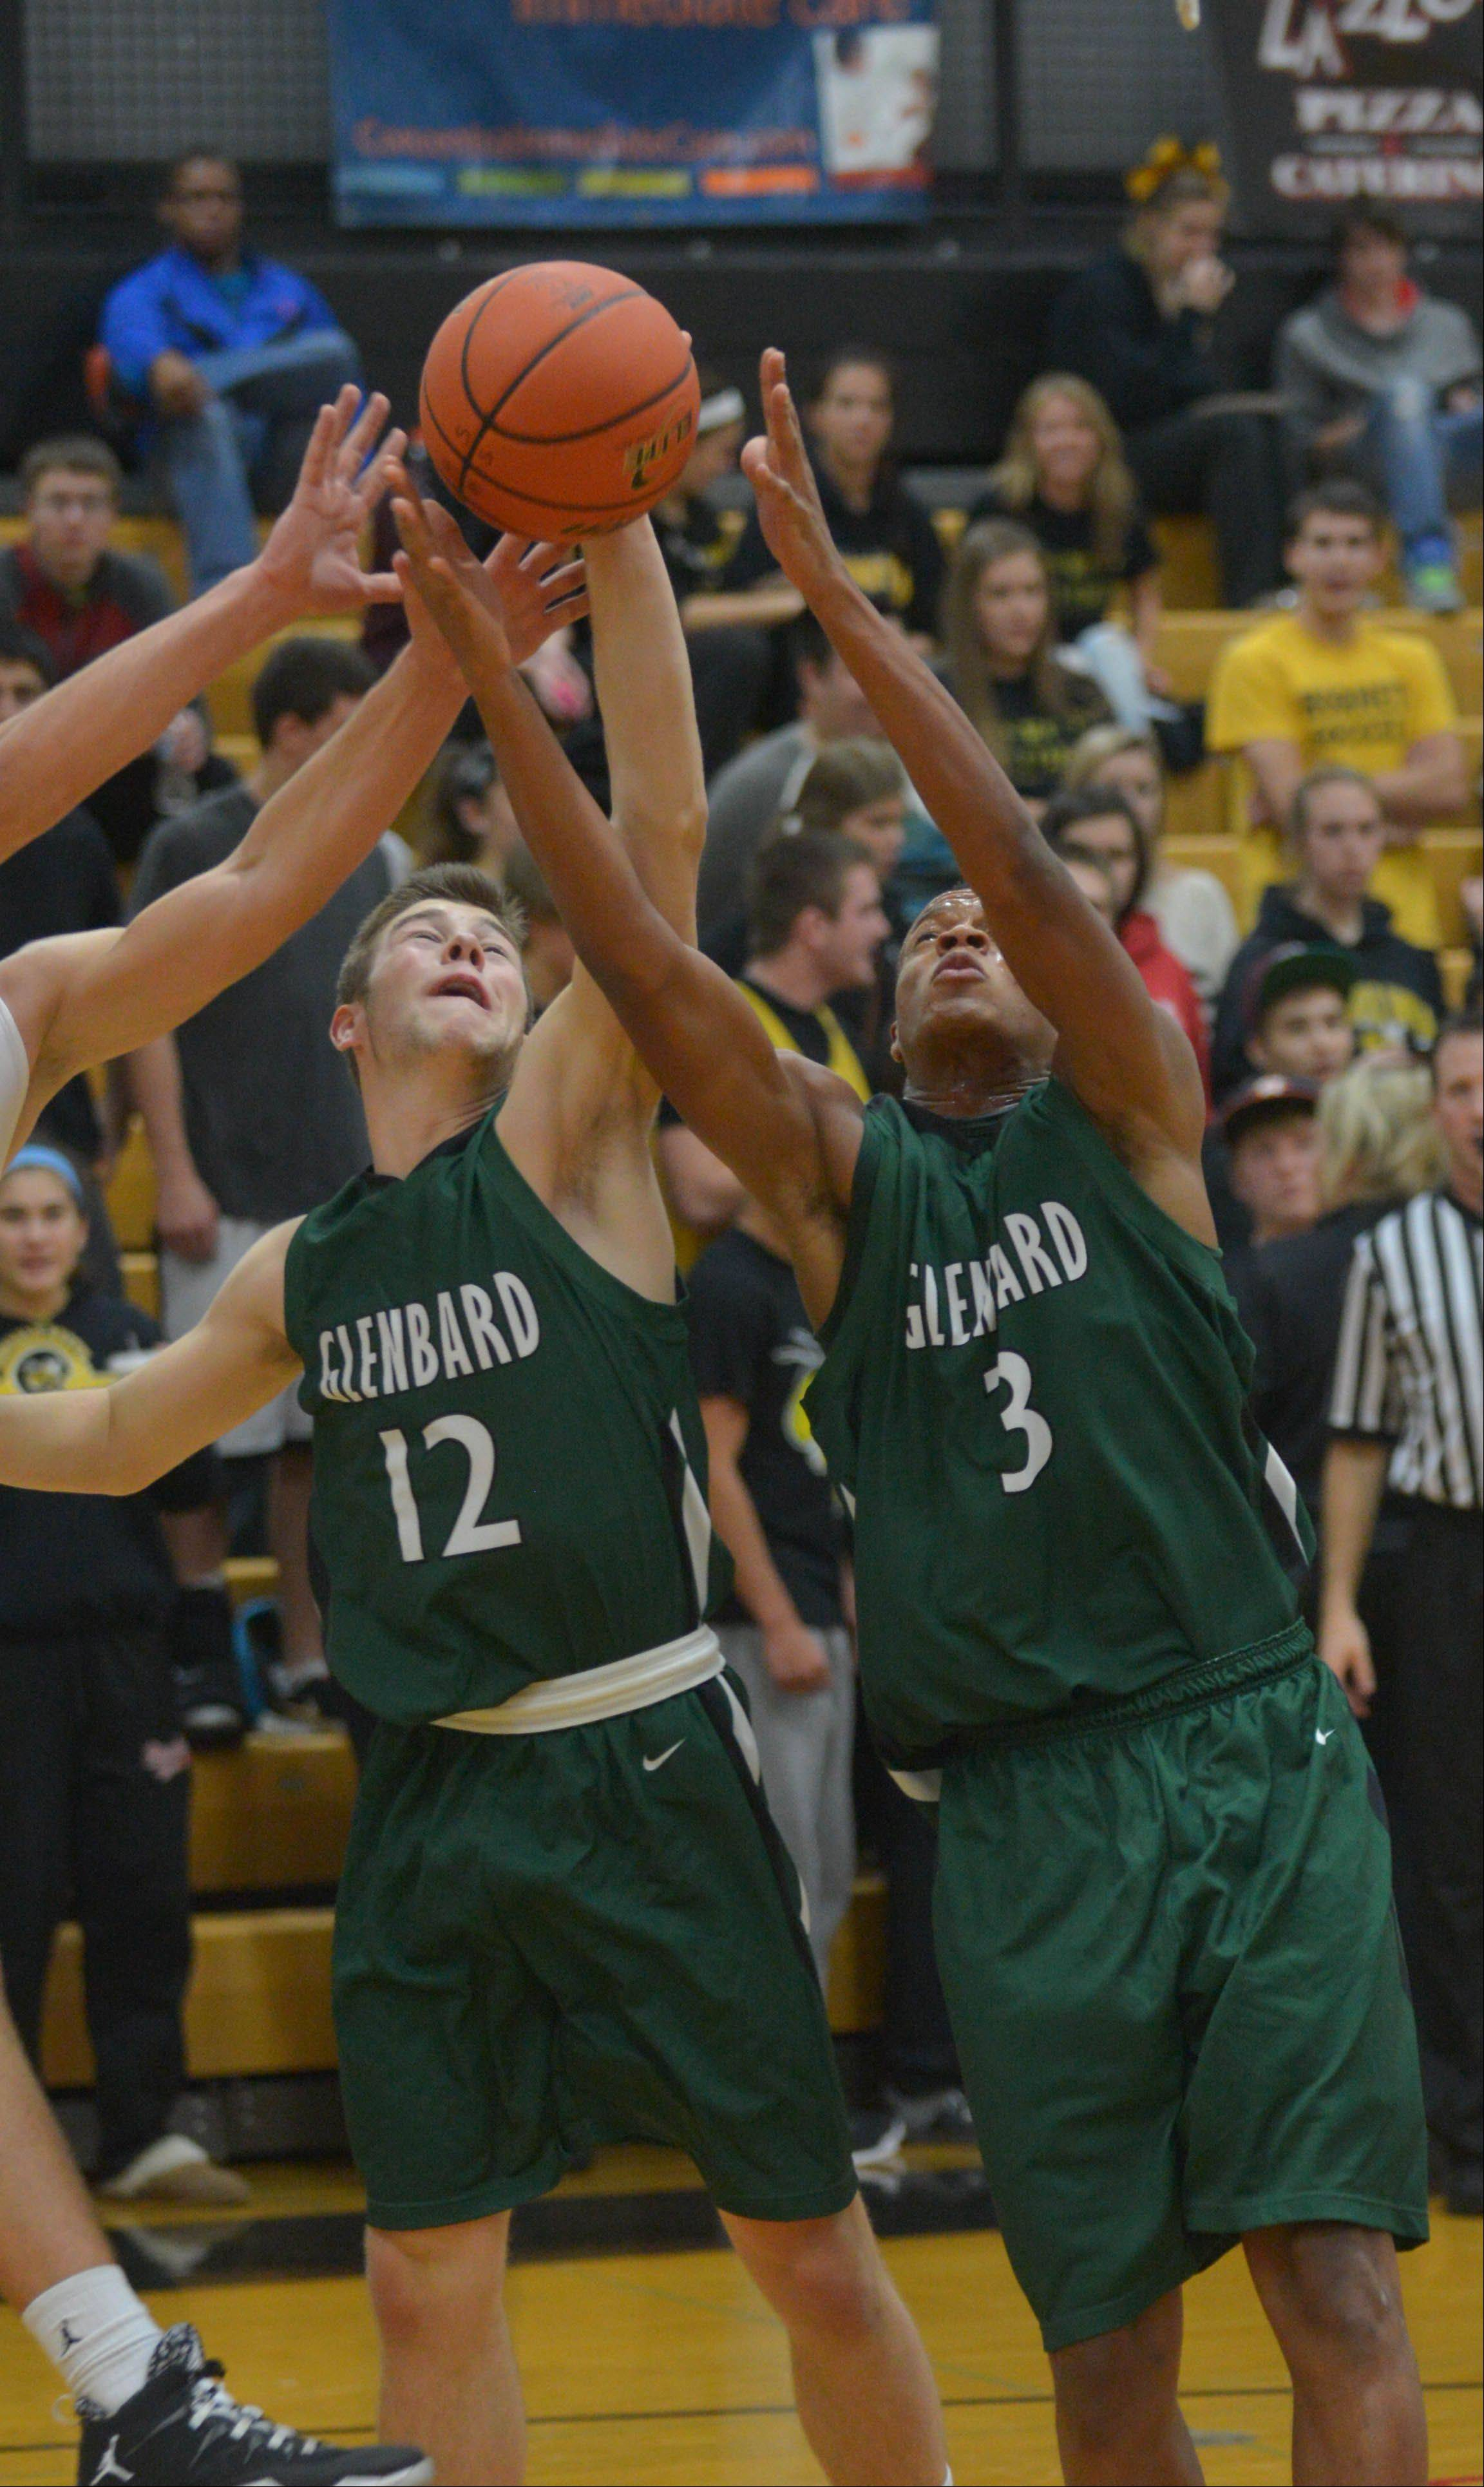 Will Reedy,left, and Kalen Starkey of Glenbard West go for a rebound.